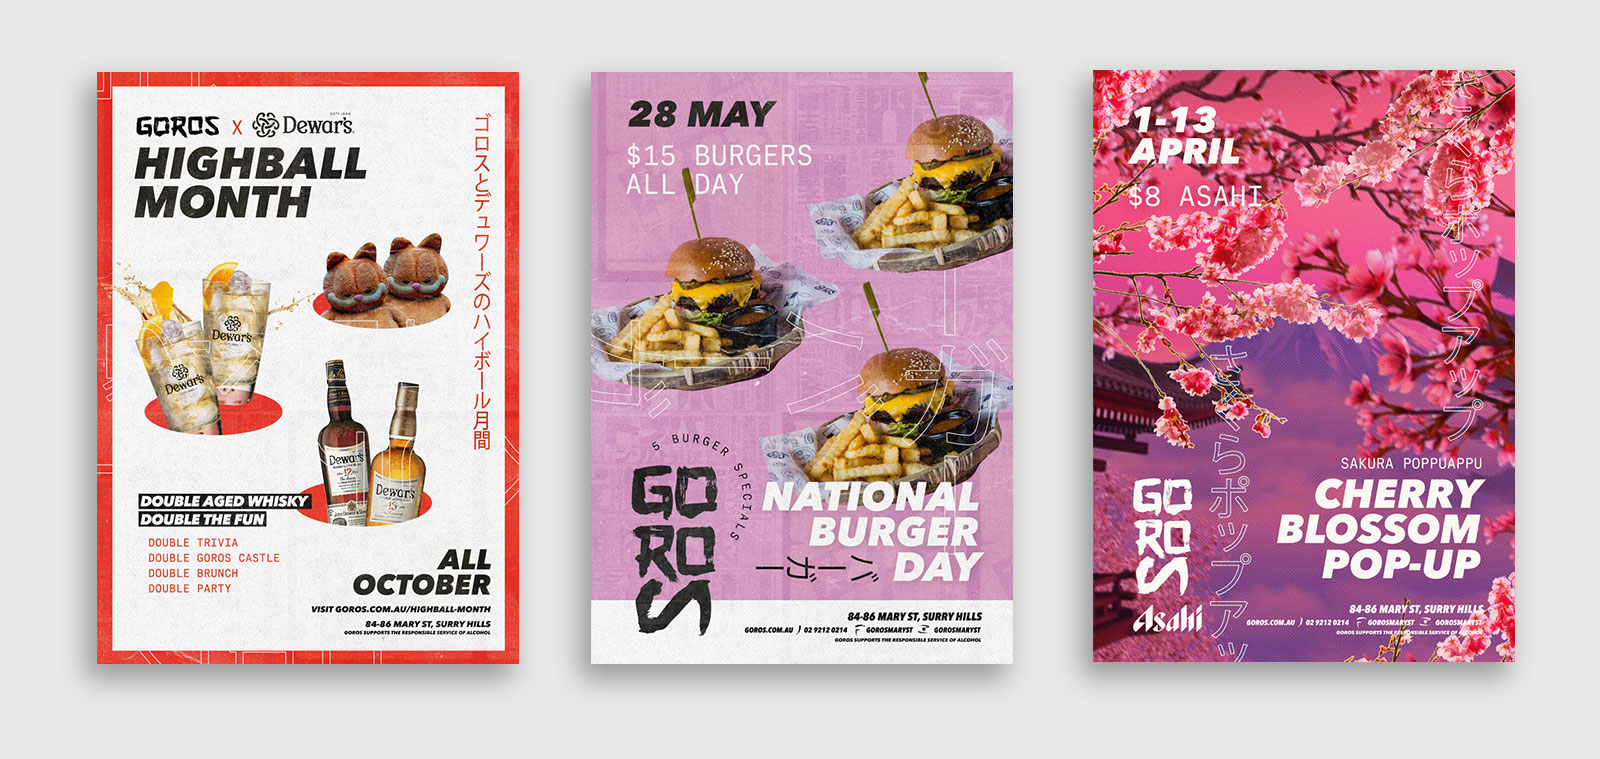 three different poster designs for events at goros